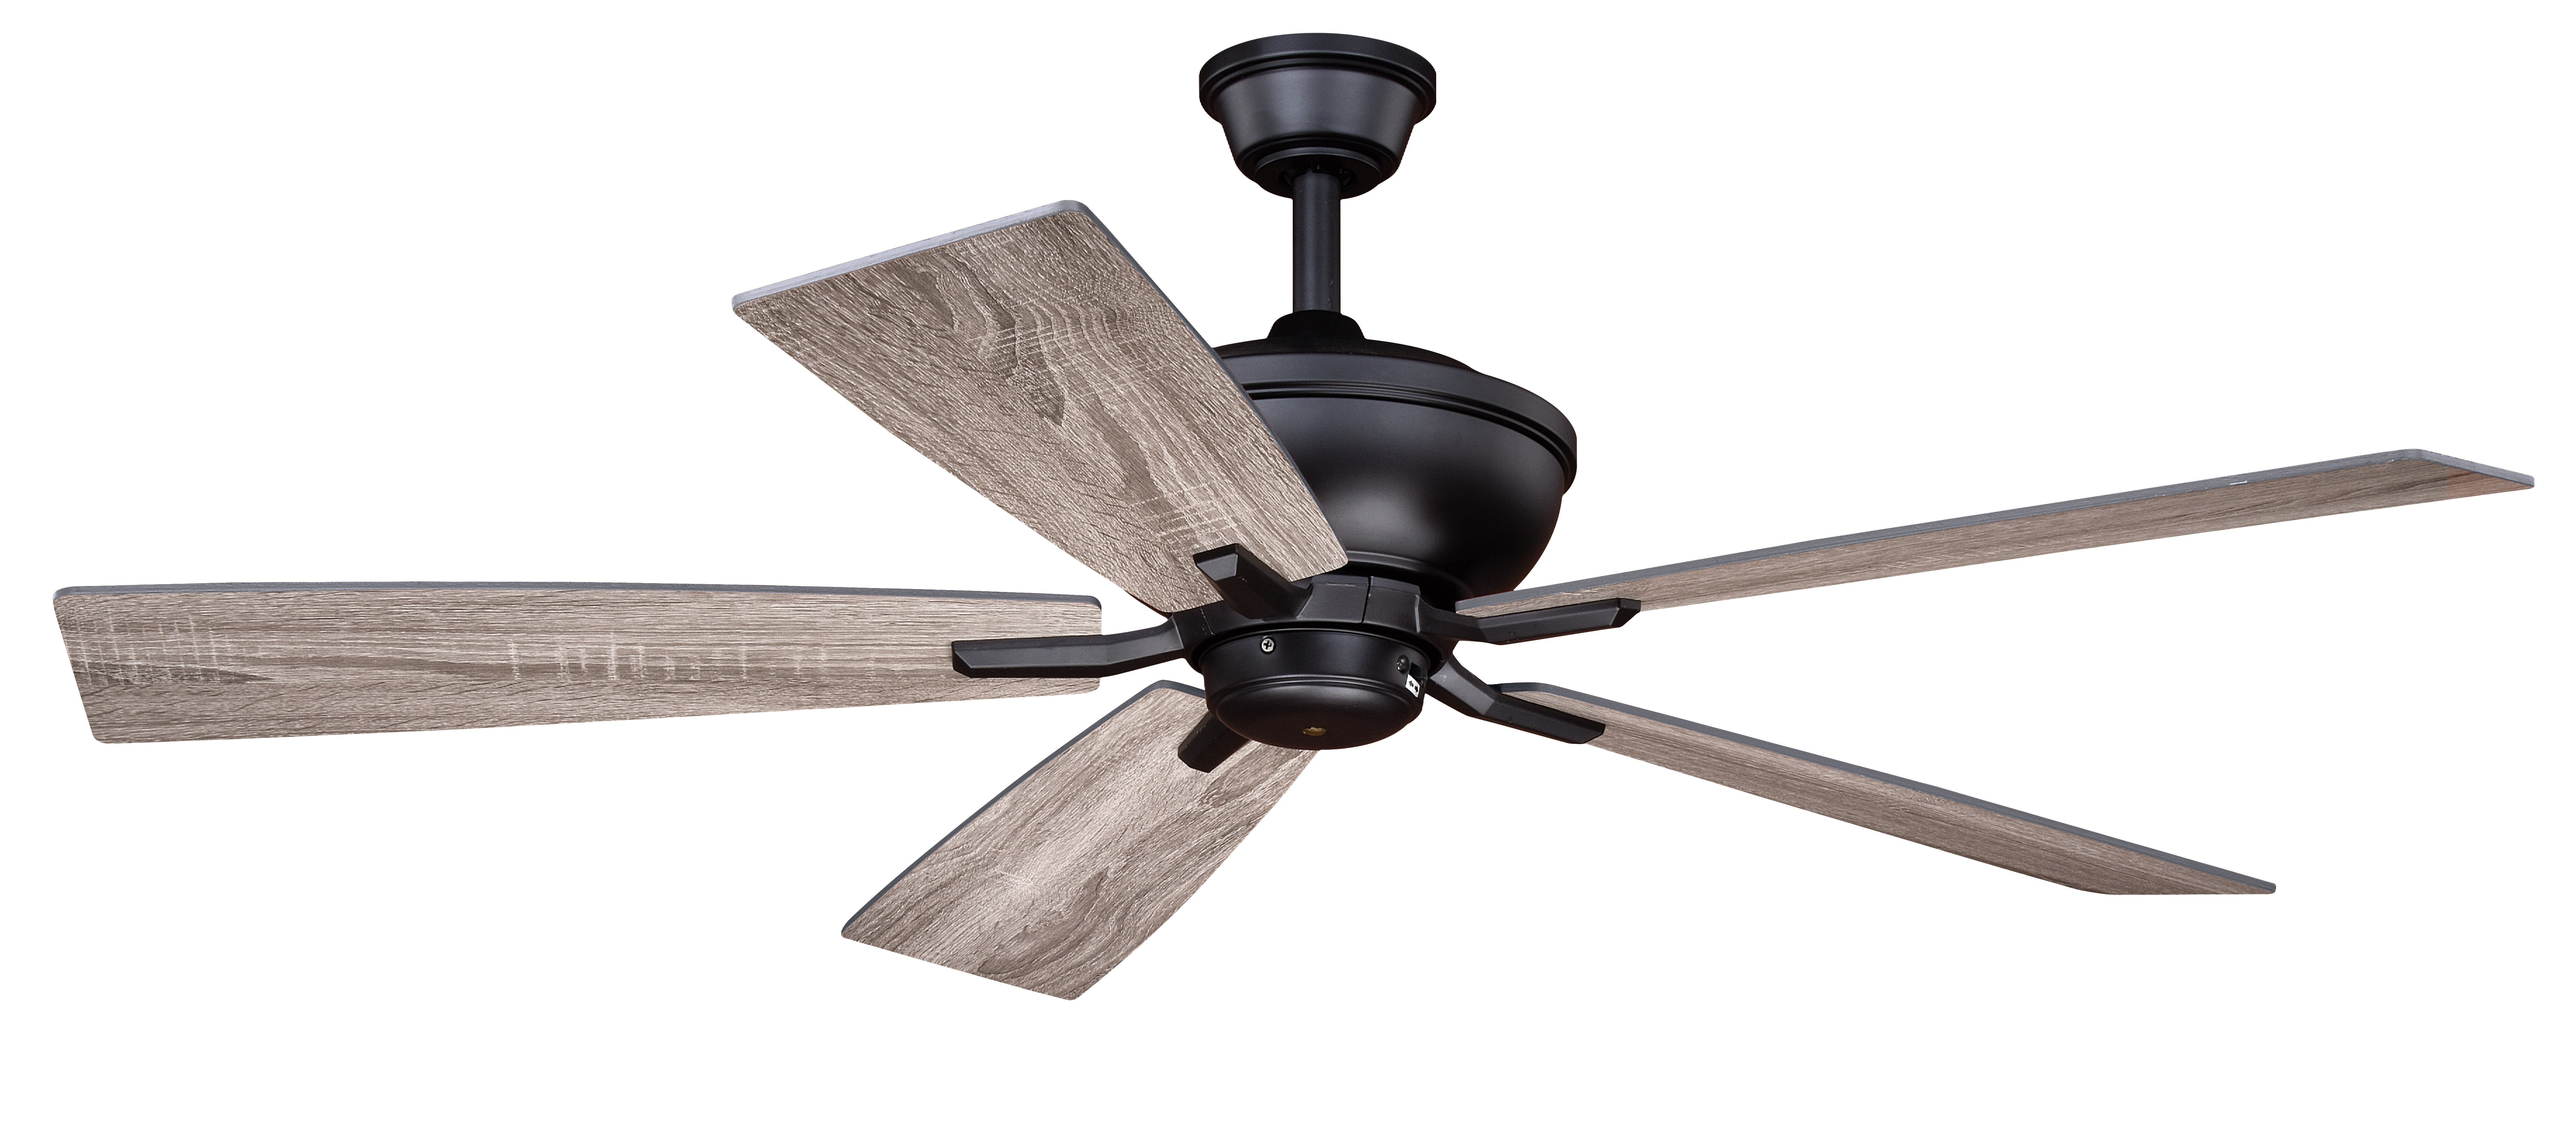 "Ratcliffe 5 Blade Led Ceiling Fans Pertaining To Most Recent 52"" Hirsch 5 Blade Ceiling Fan With Remote, Light Kit Included (View 17 of 20)"